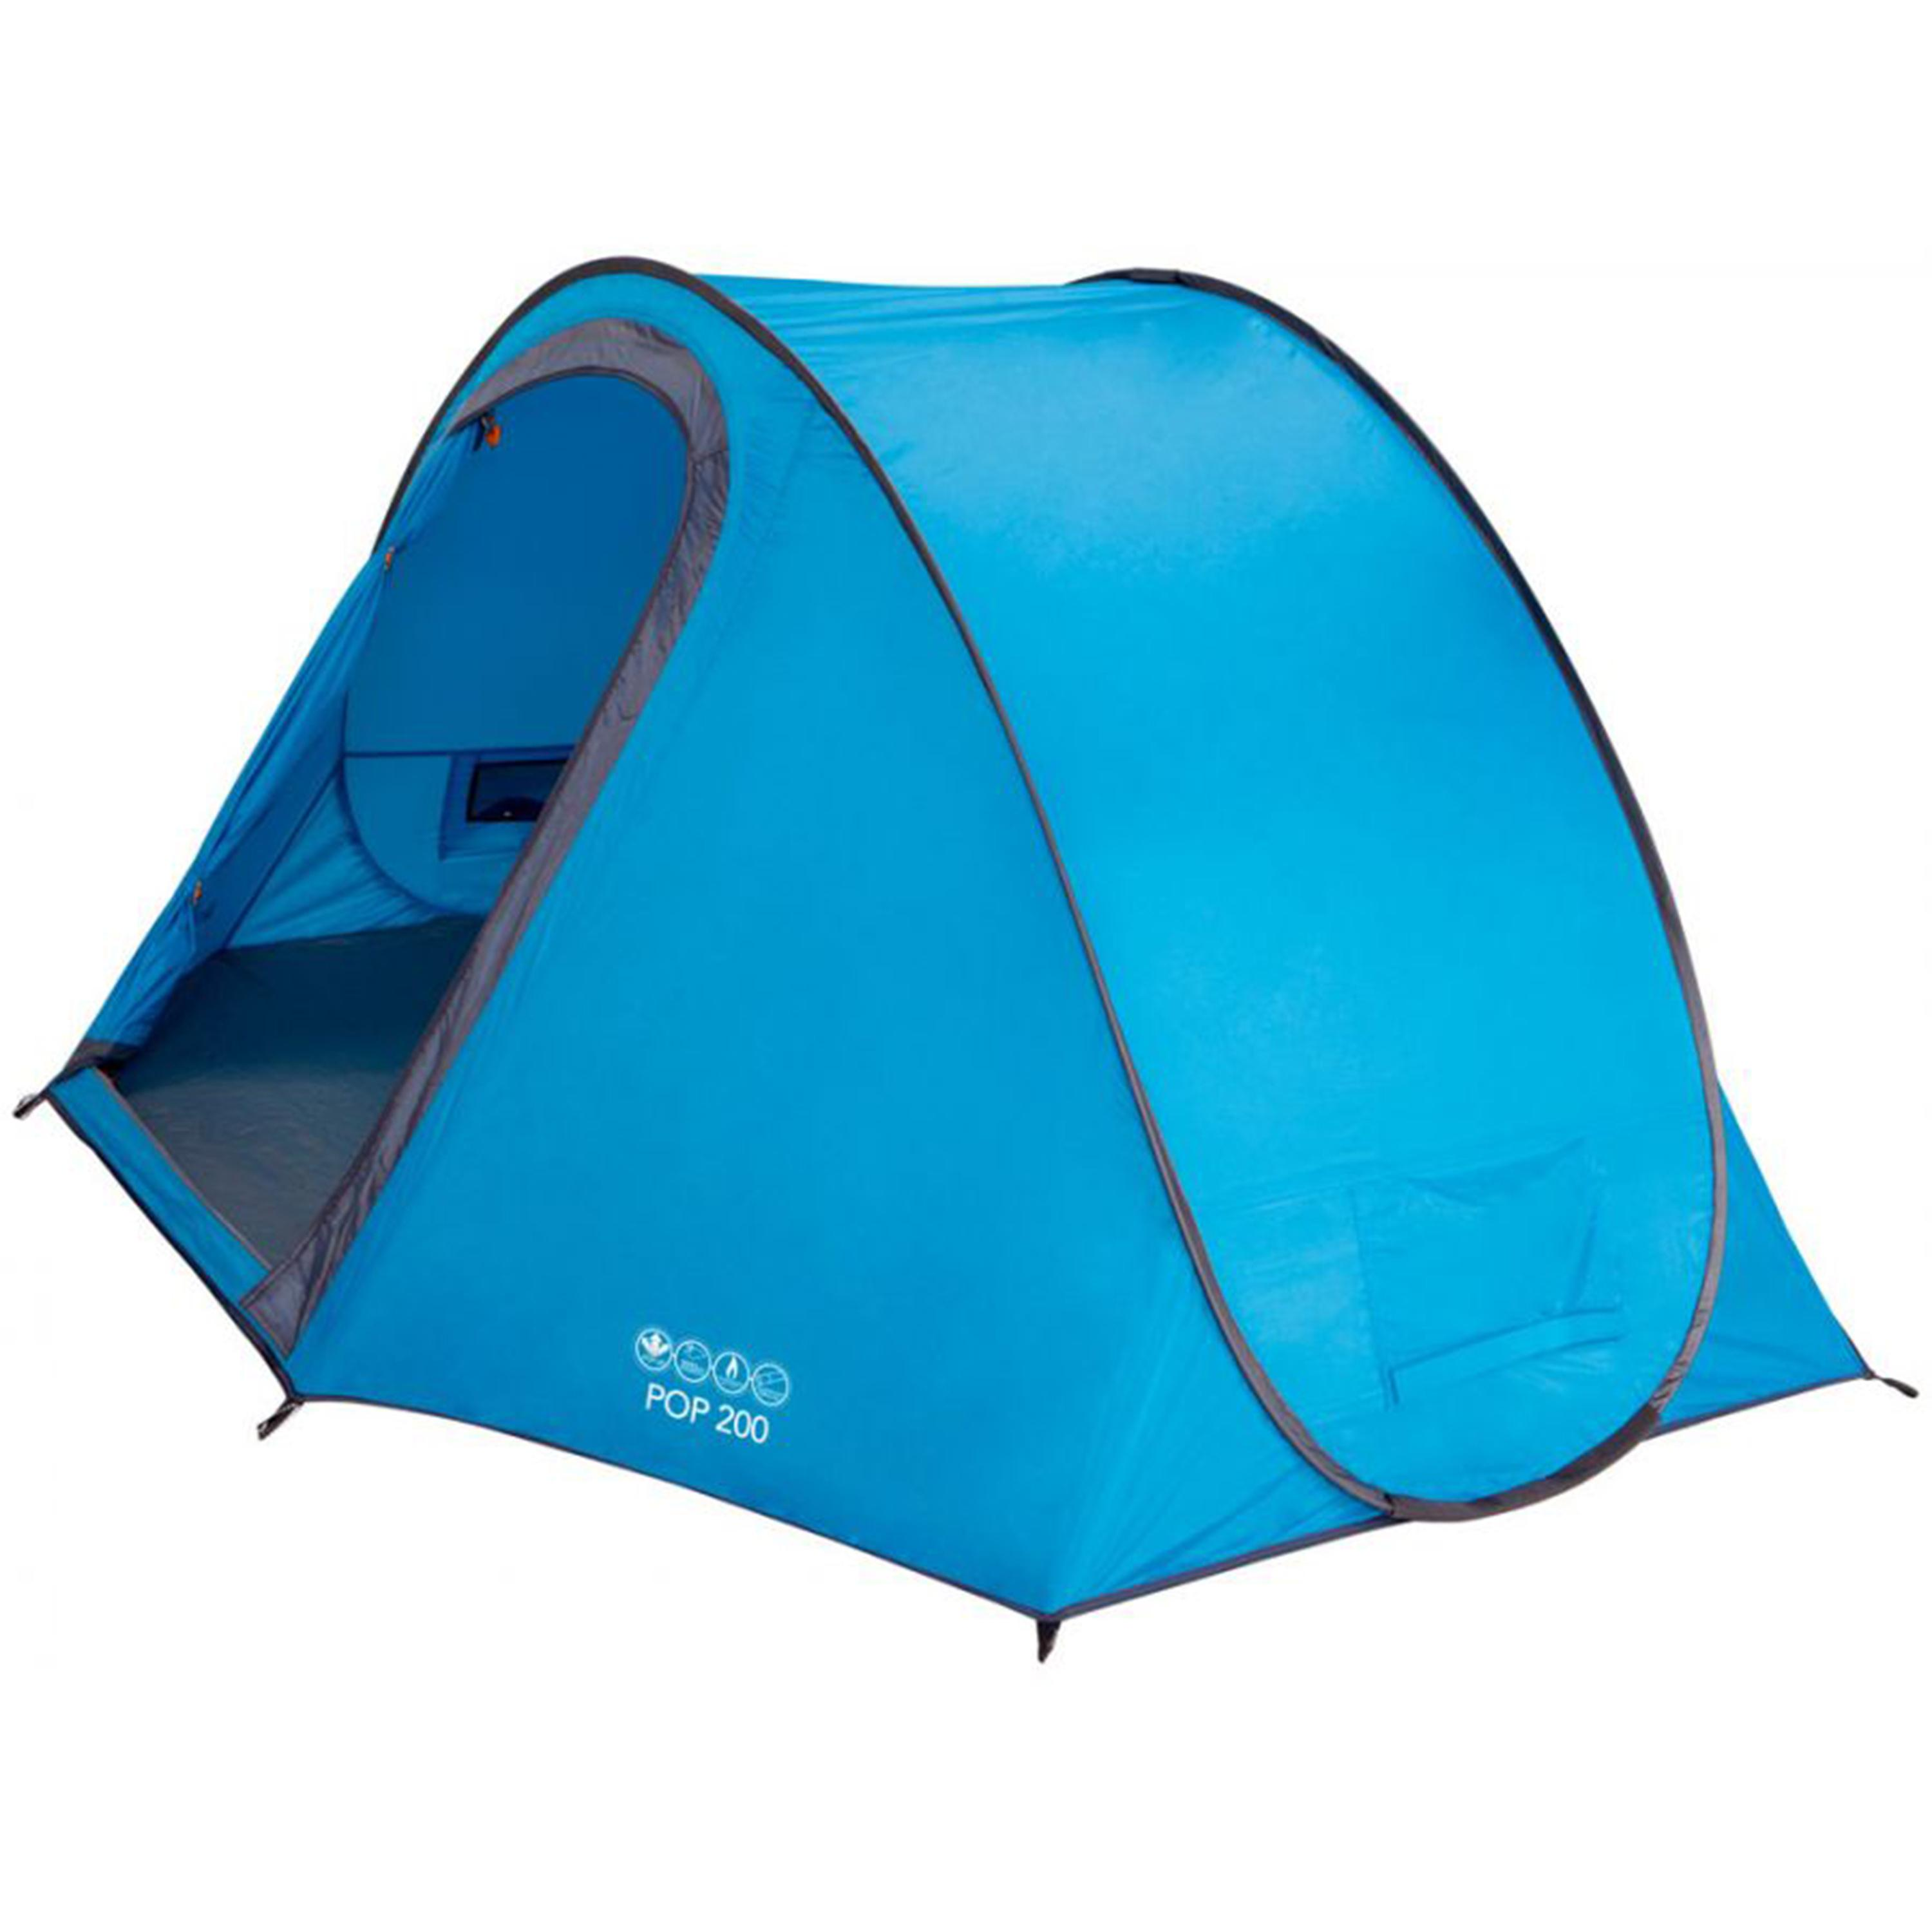 vango pop up 200 tent buyer compare tent prices save. Black Bedroom Furniture Sets. Home Design Ideas